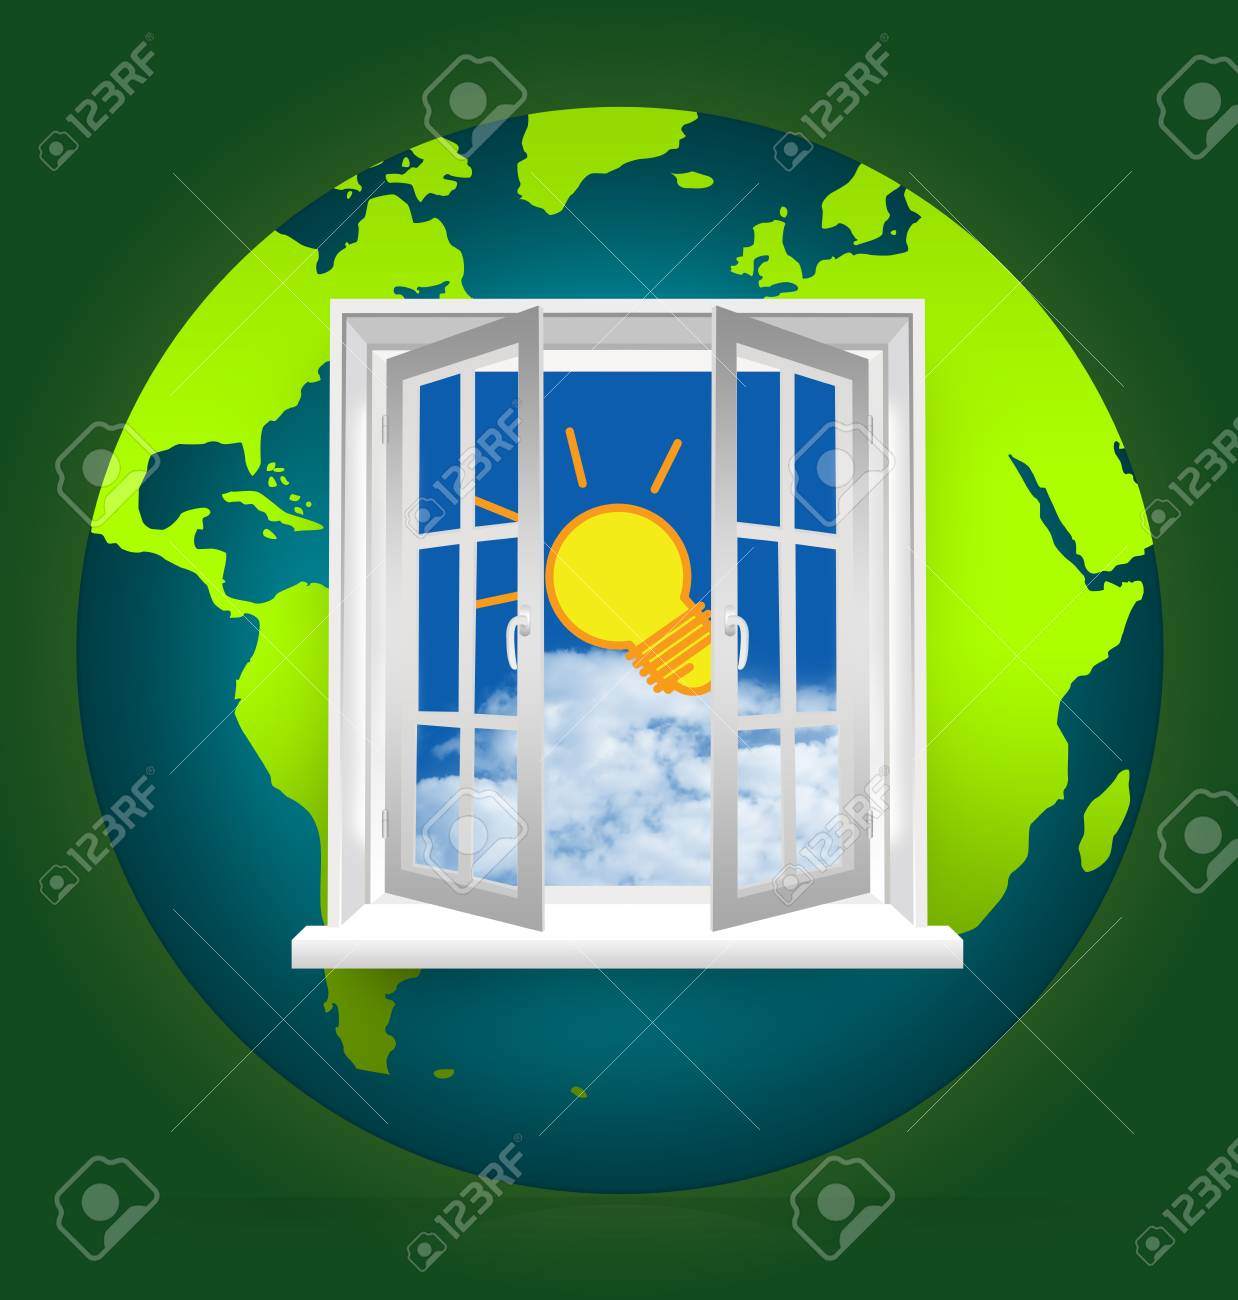 The Open Window to Blue Sky With The Light Bulb on The Earth for Idea Generated Concept Stock Photo - 17404307